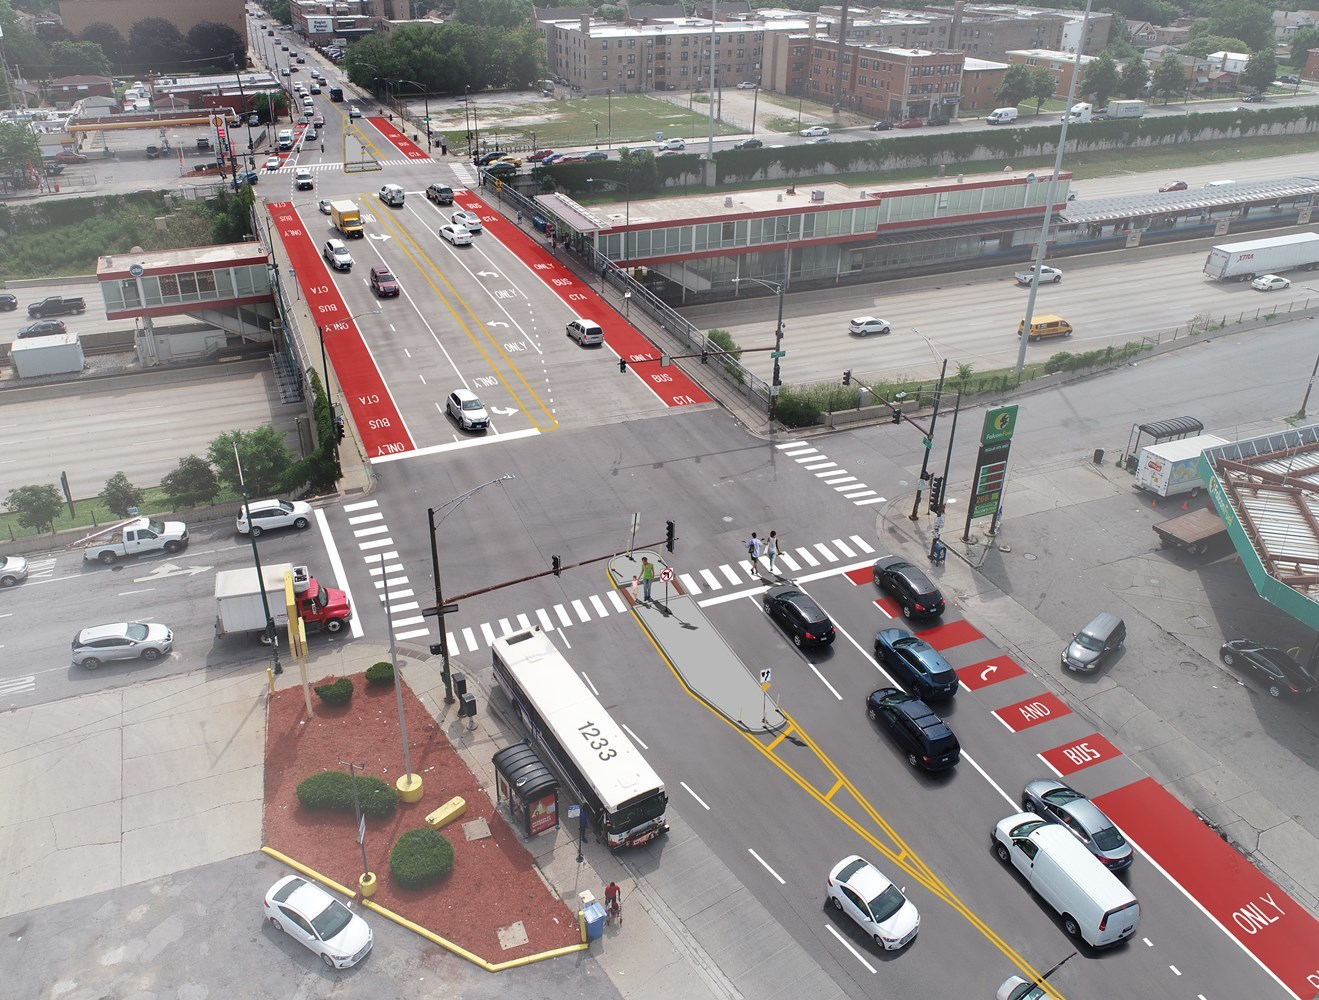 Rendering showing aerial view of improvements planned for 79th Street near the Red Line.